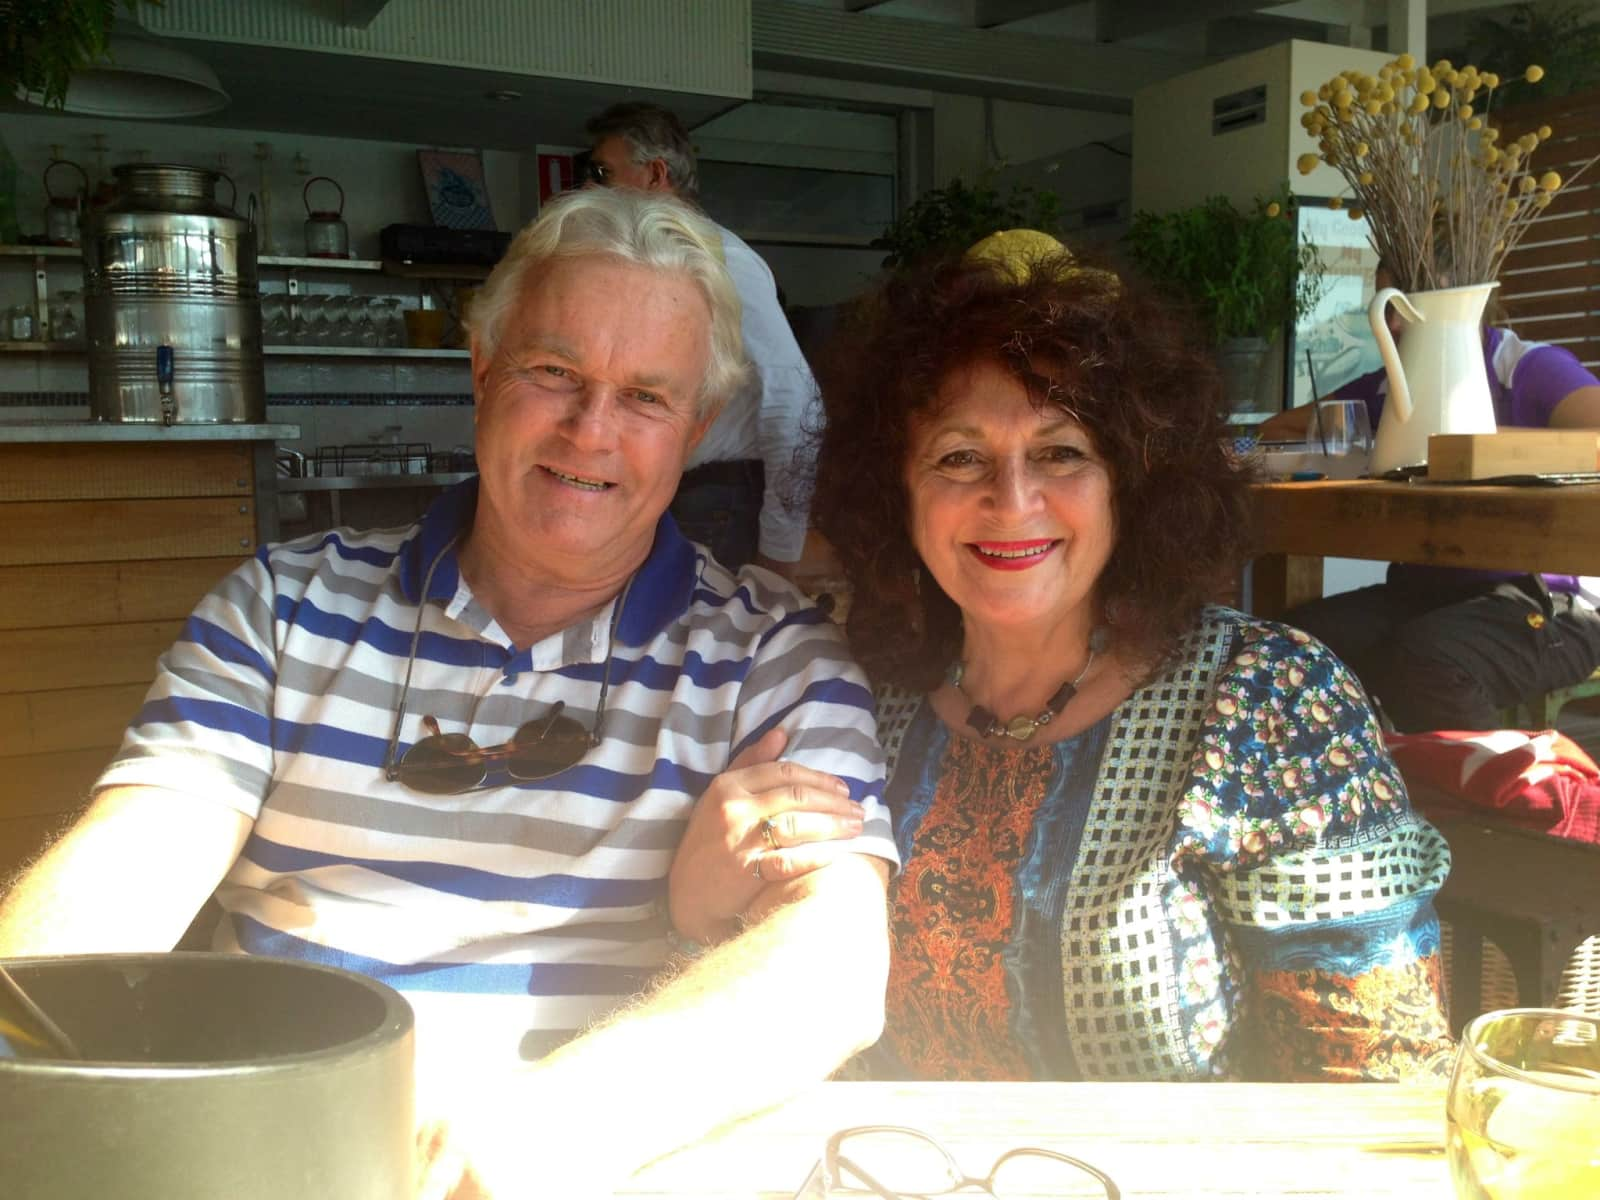 Suzanne m & Michael from Stockton, New South Wales, Australia